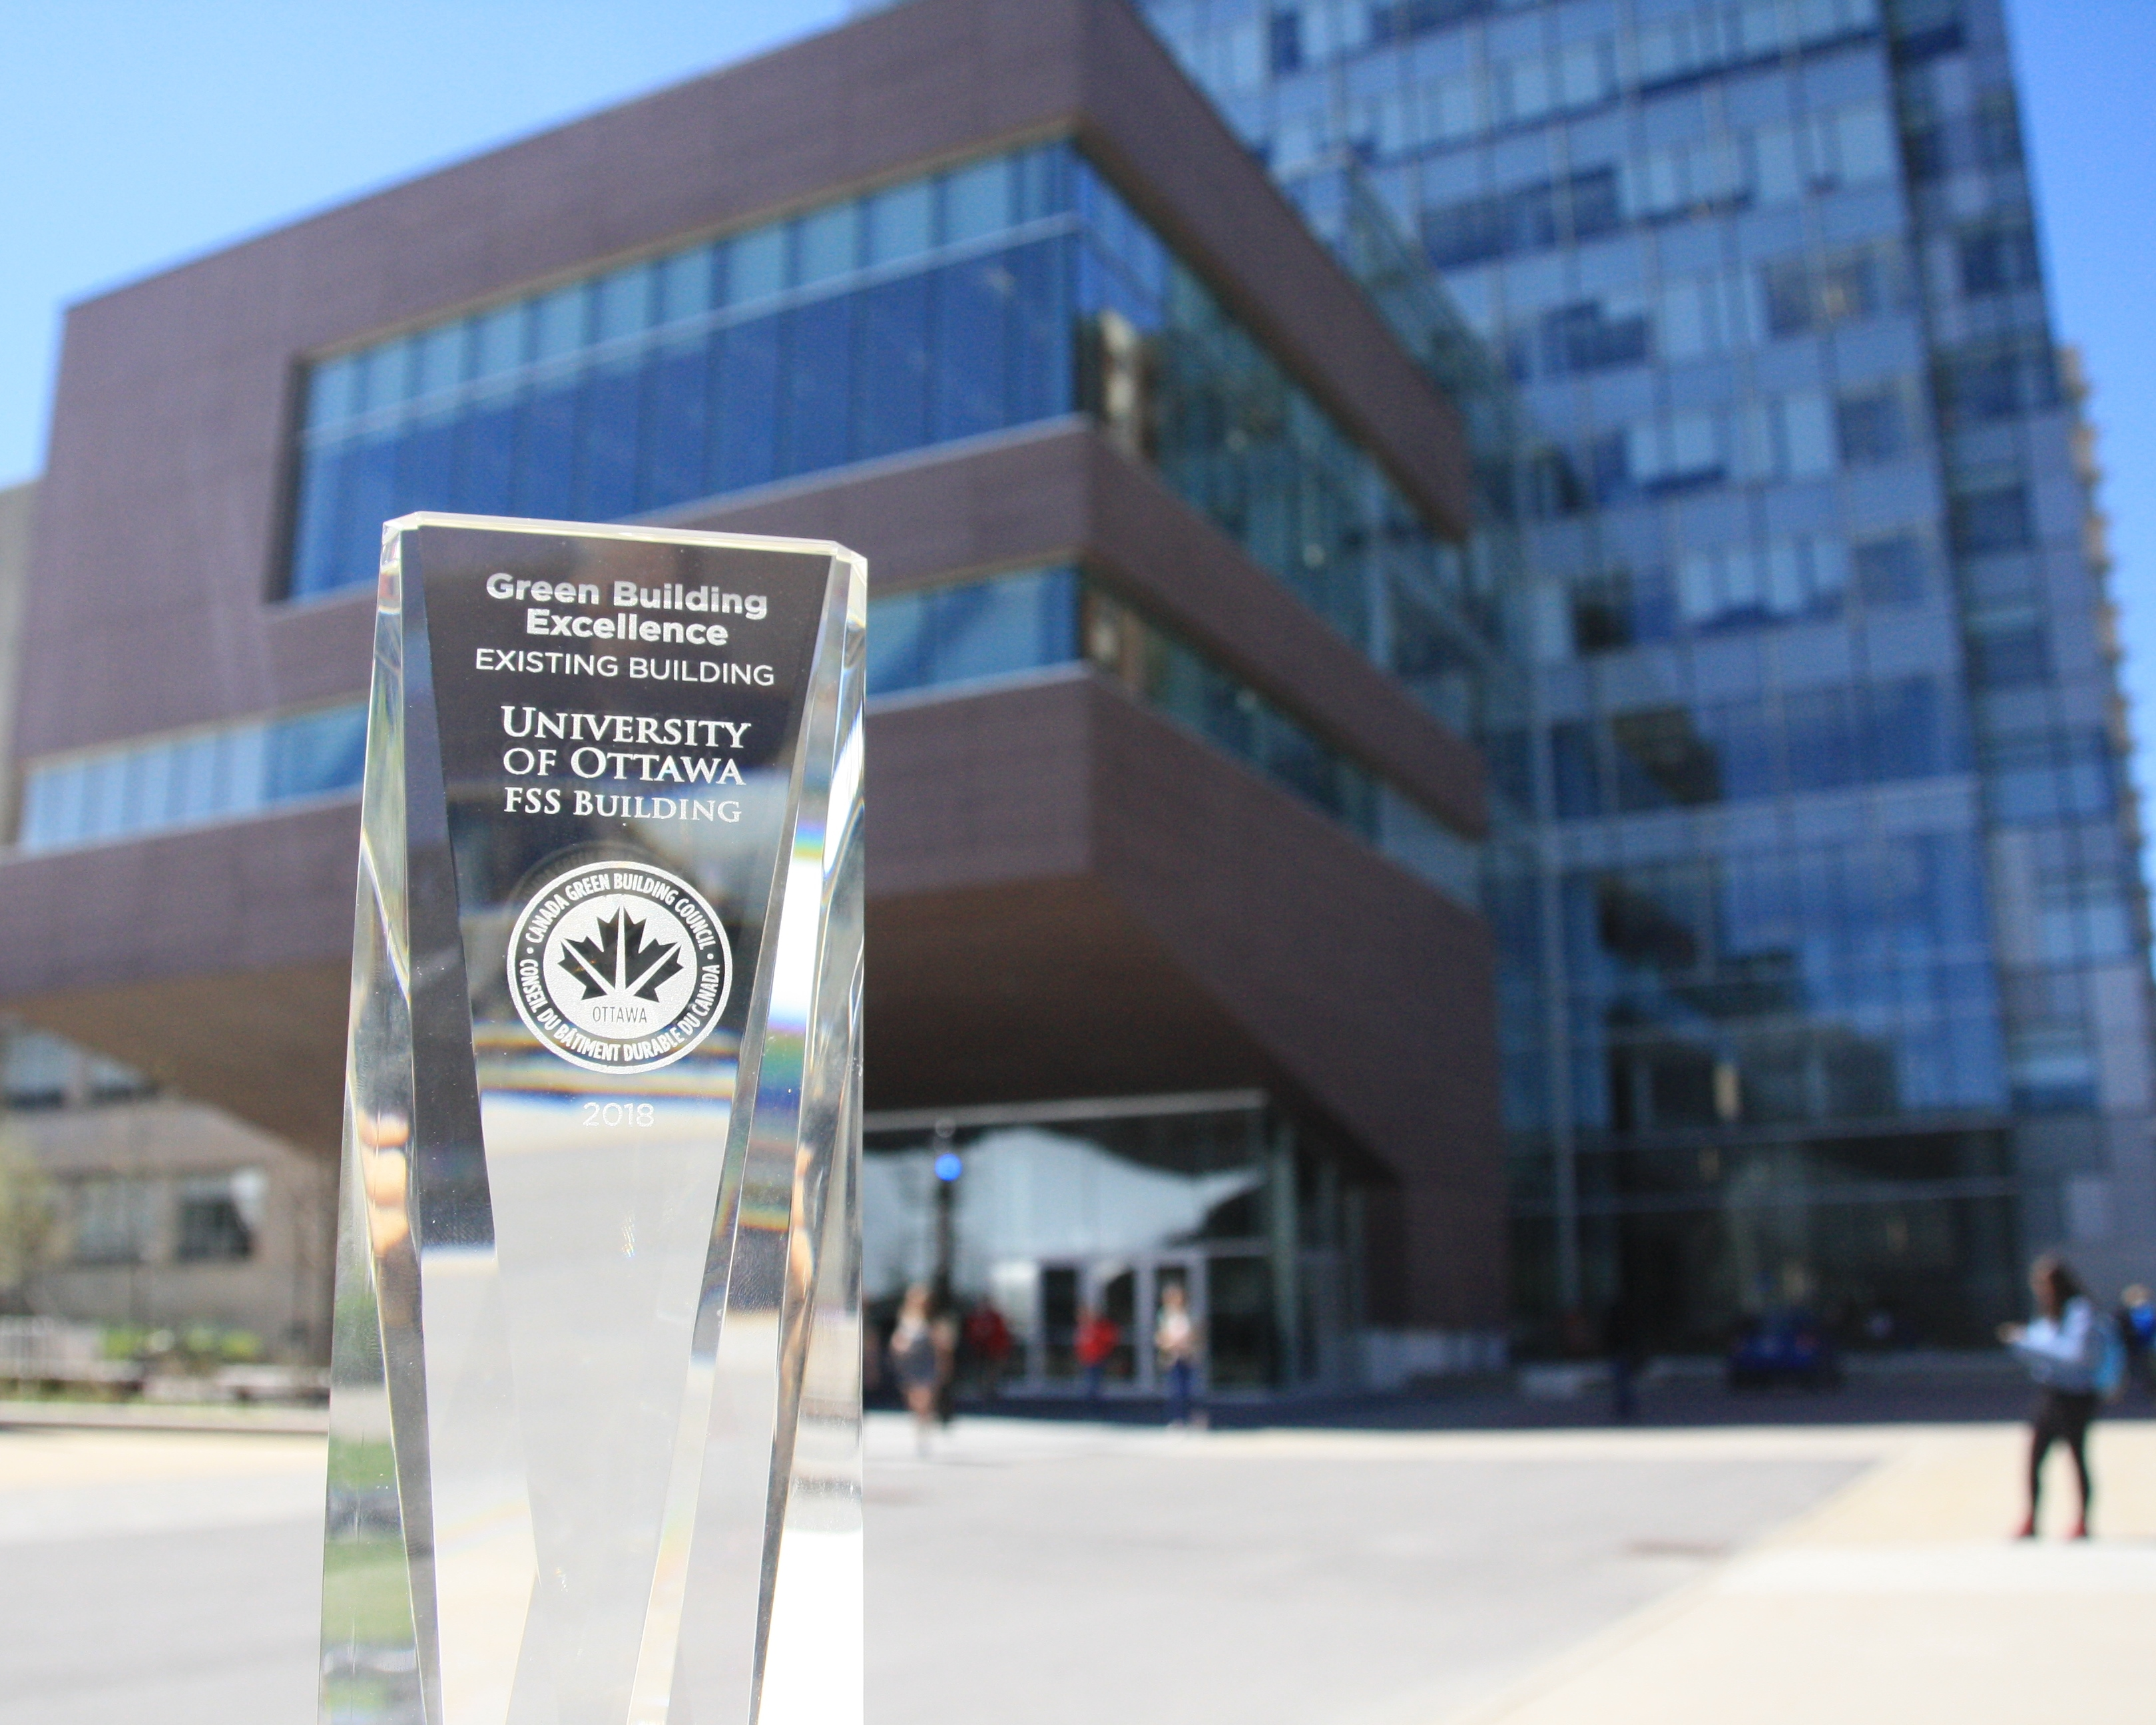 A glass award in front of the Faculty of Social Sciences building.